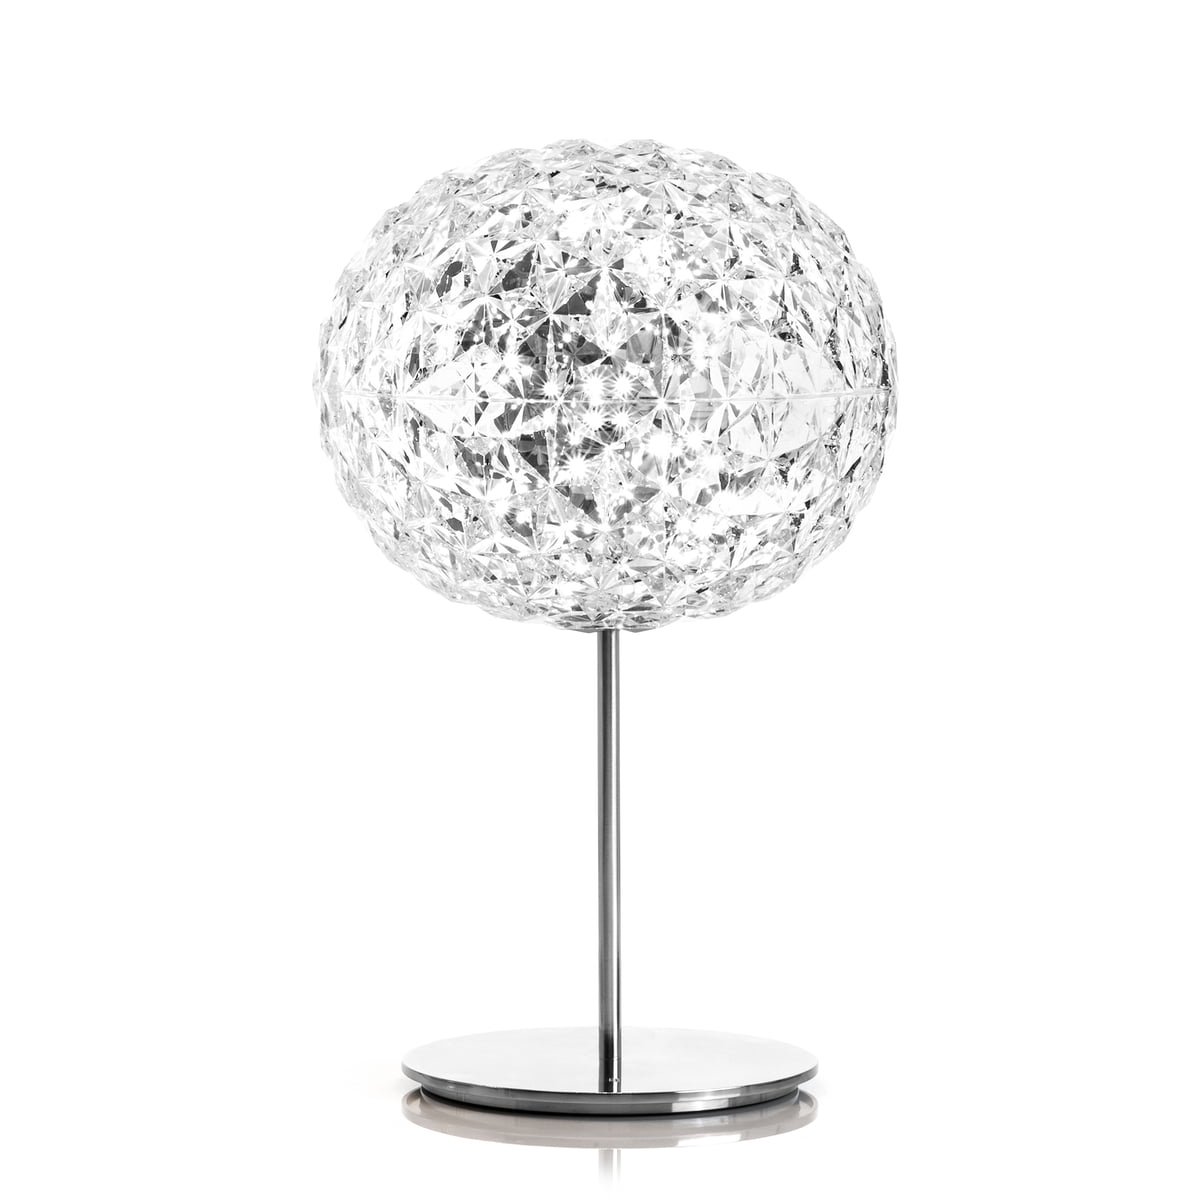 Planet led table lamp with base by kartell dimmable planet led table lamp with base by kartell in crystal clear geotapseo Choice Image